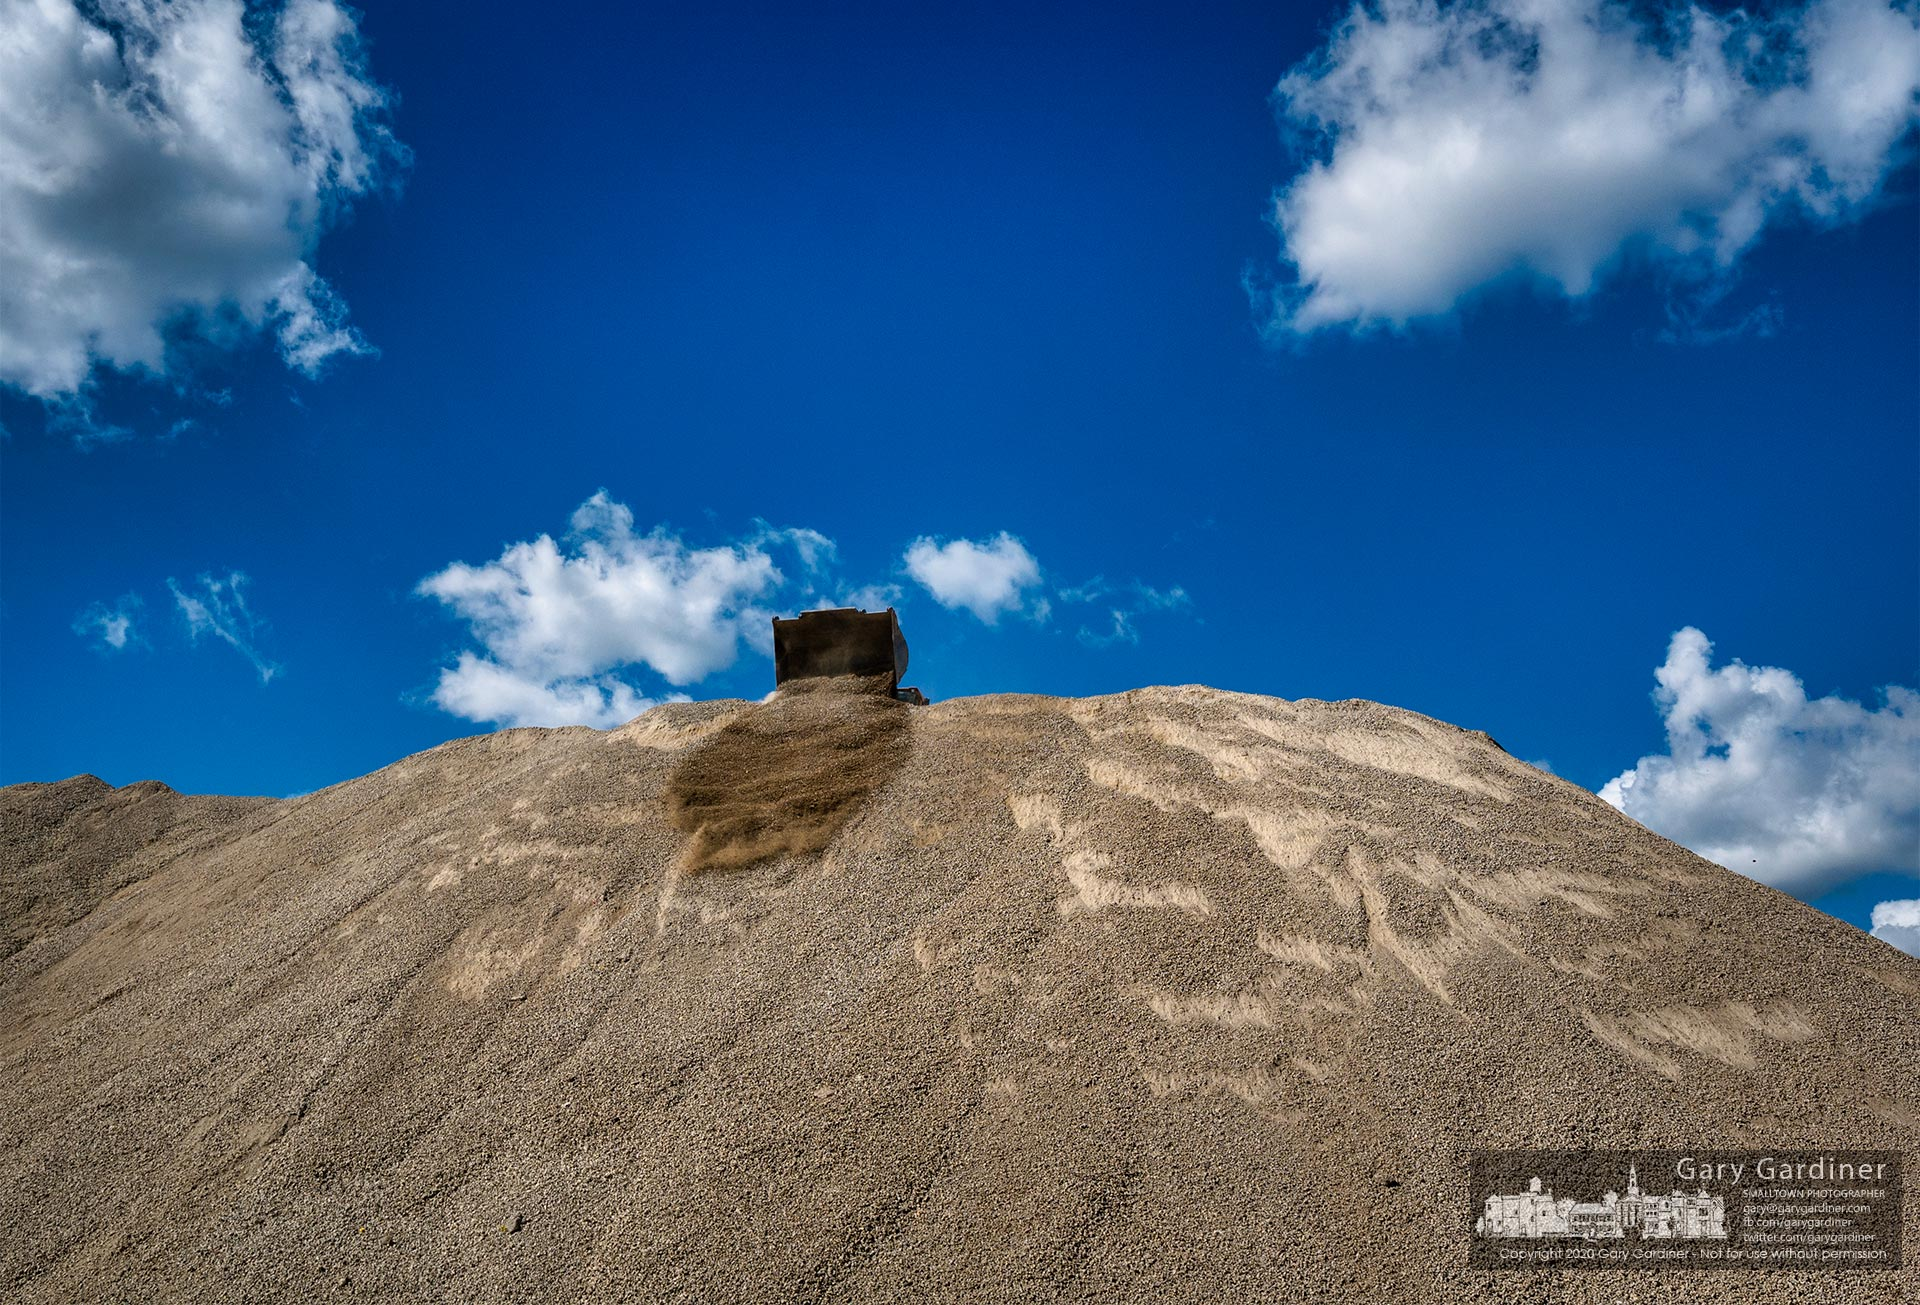 A front end loader drops recycled concrete gravel over the edge of a large mound of gravel stored for sale in a recycling yard near I270 and Westerville Road. My Final Photo for Oct. 1, 2020.